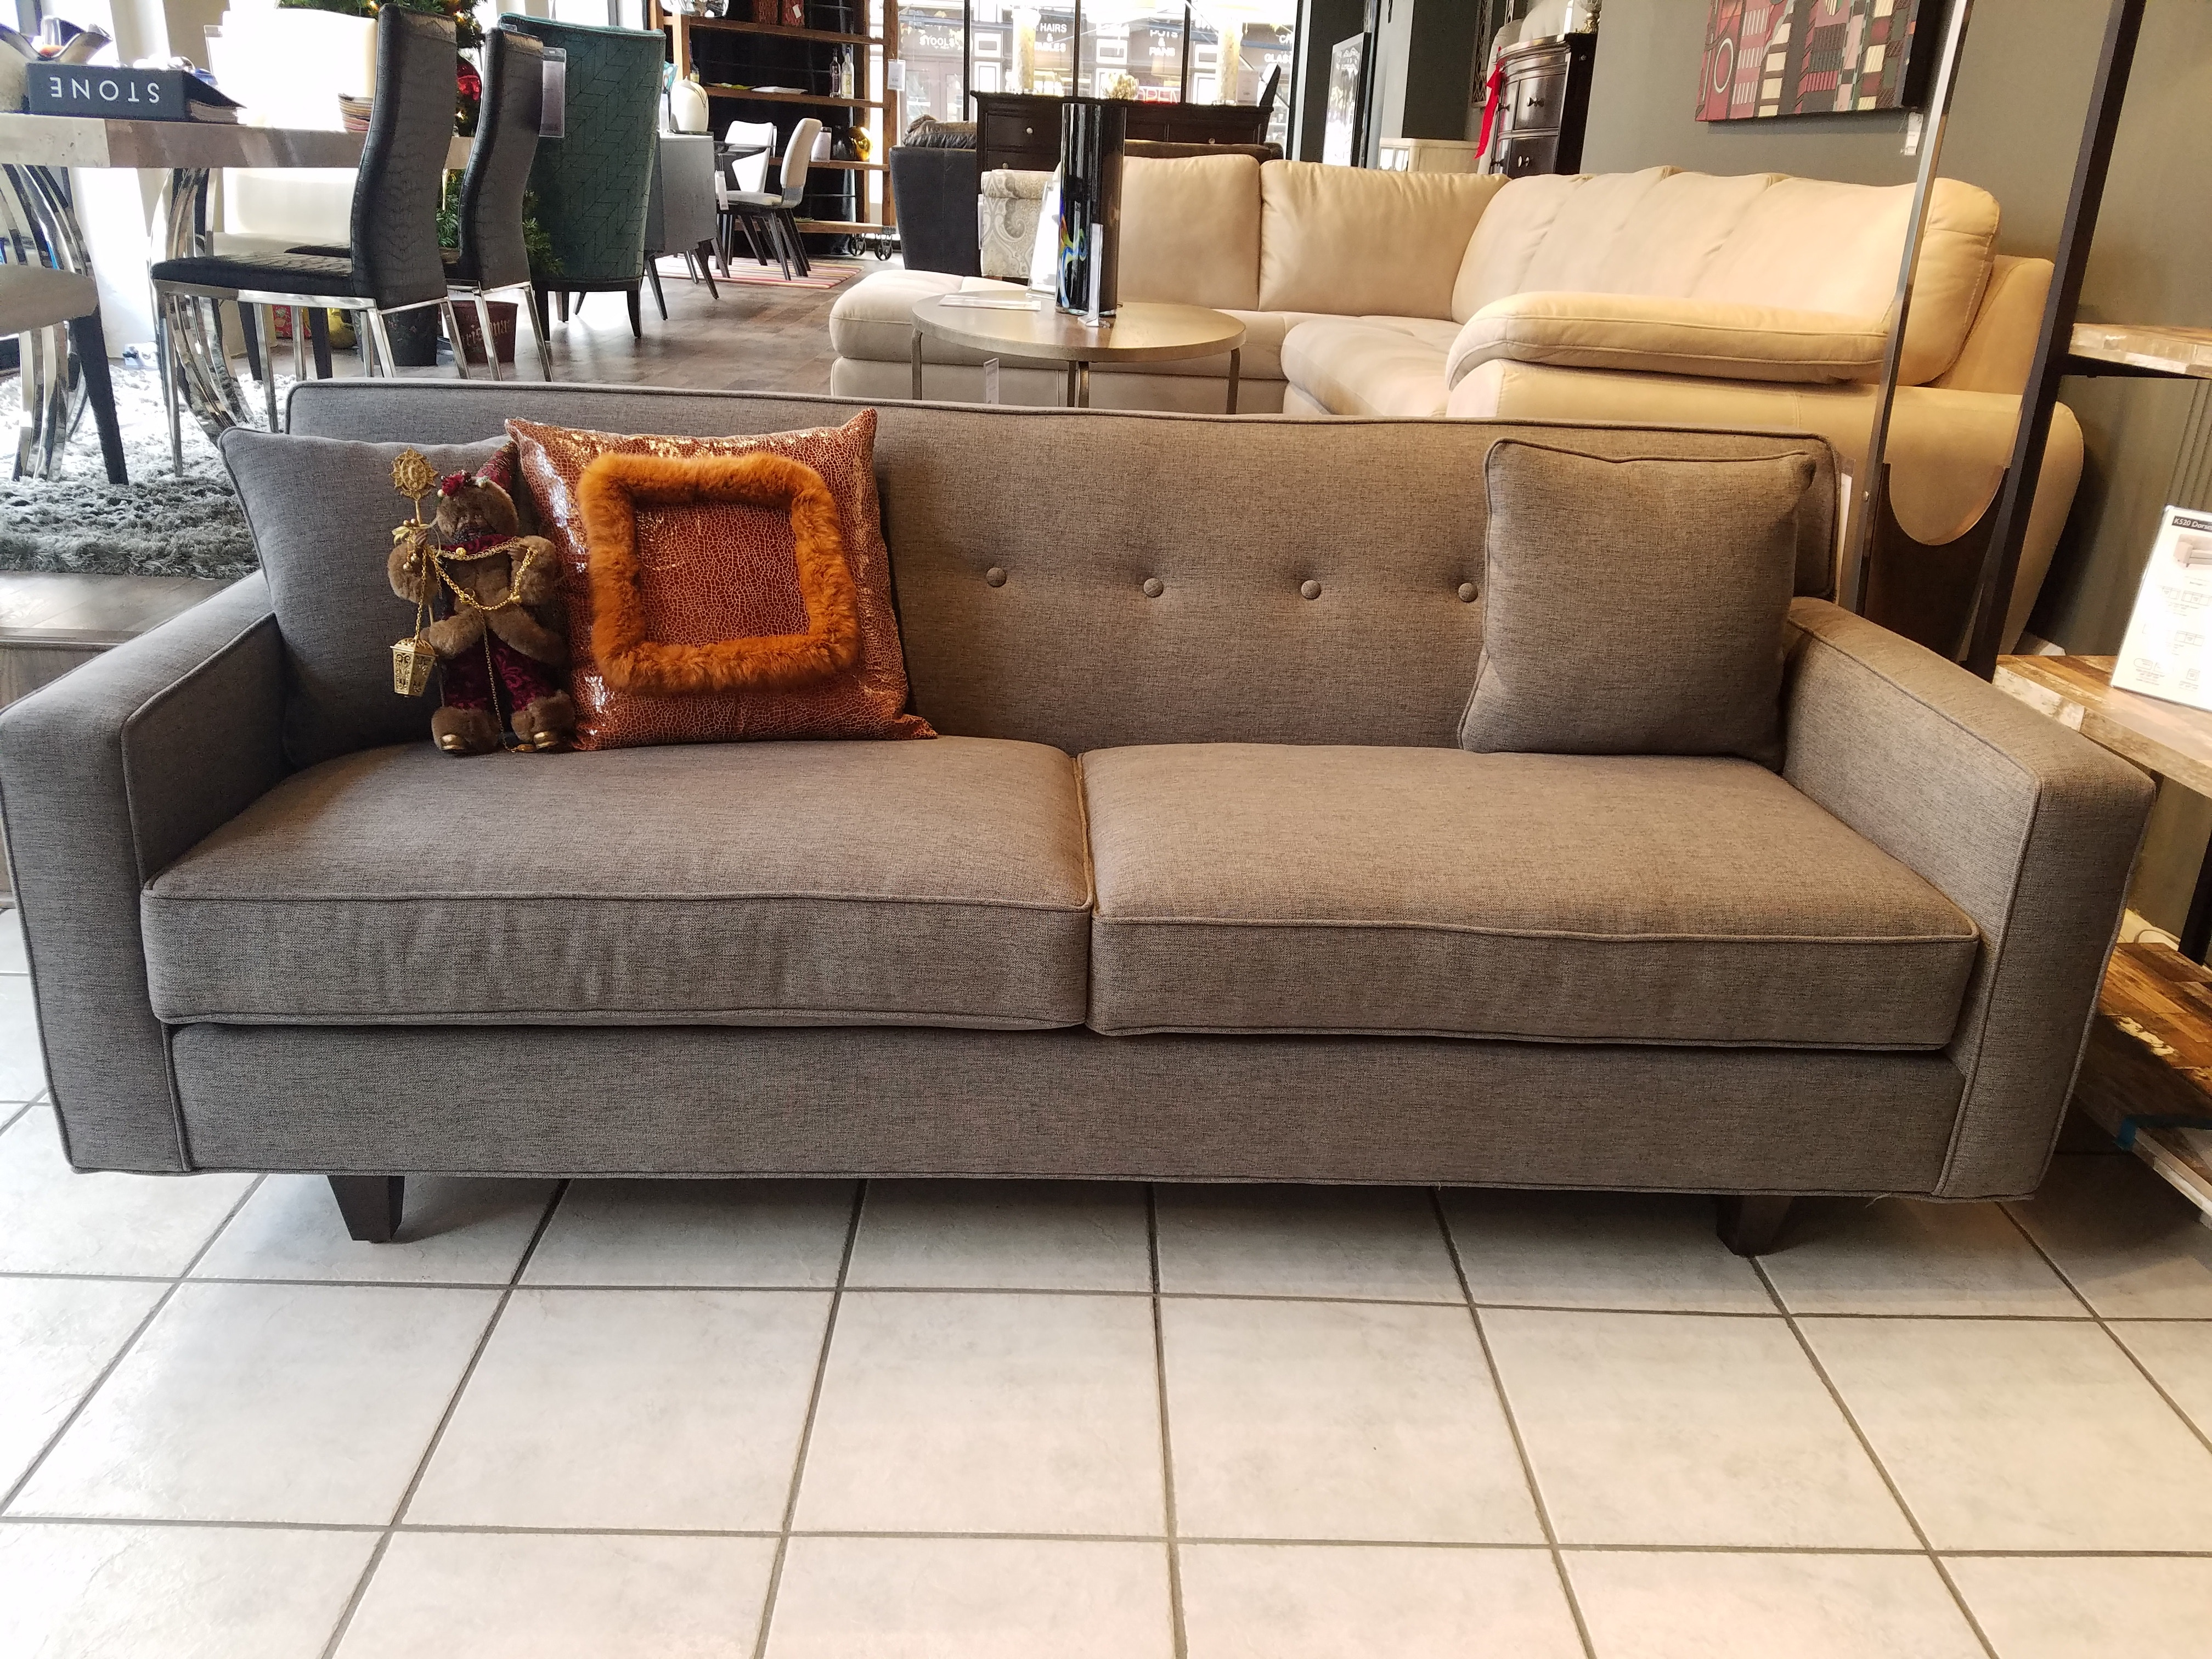 Merveilleux Rowe Dorset Chrome Medium Sofa K520RC 000